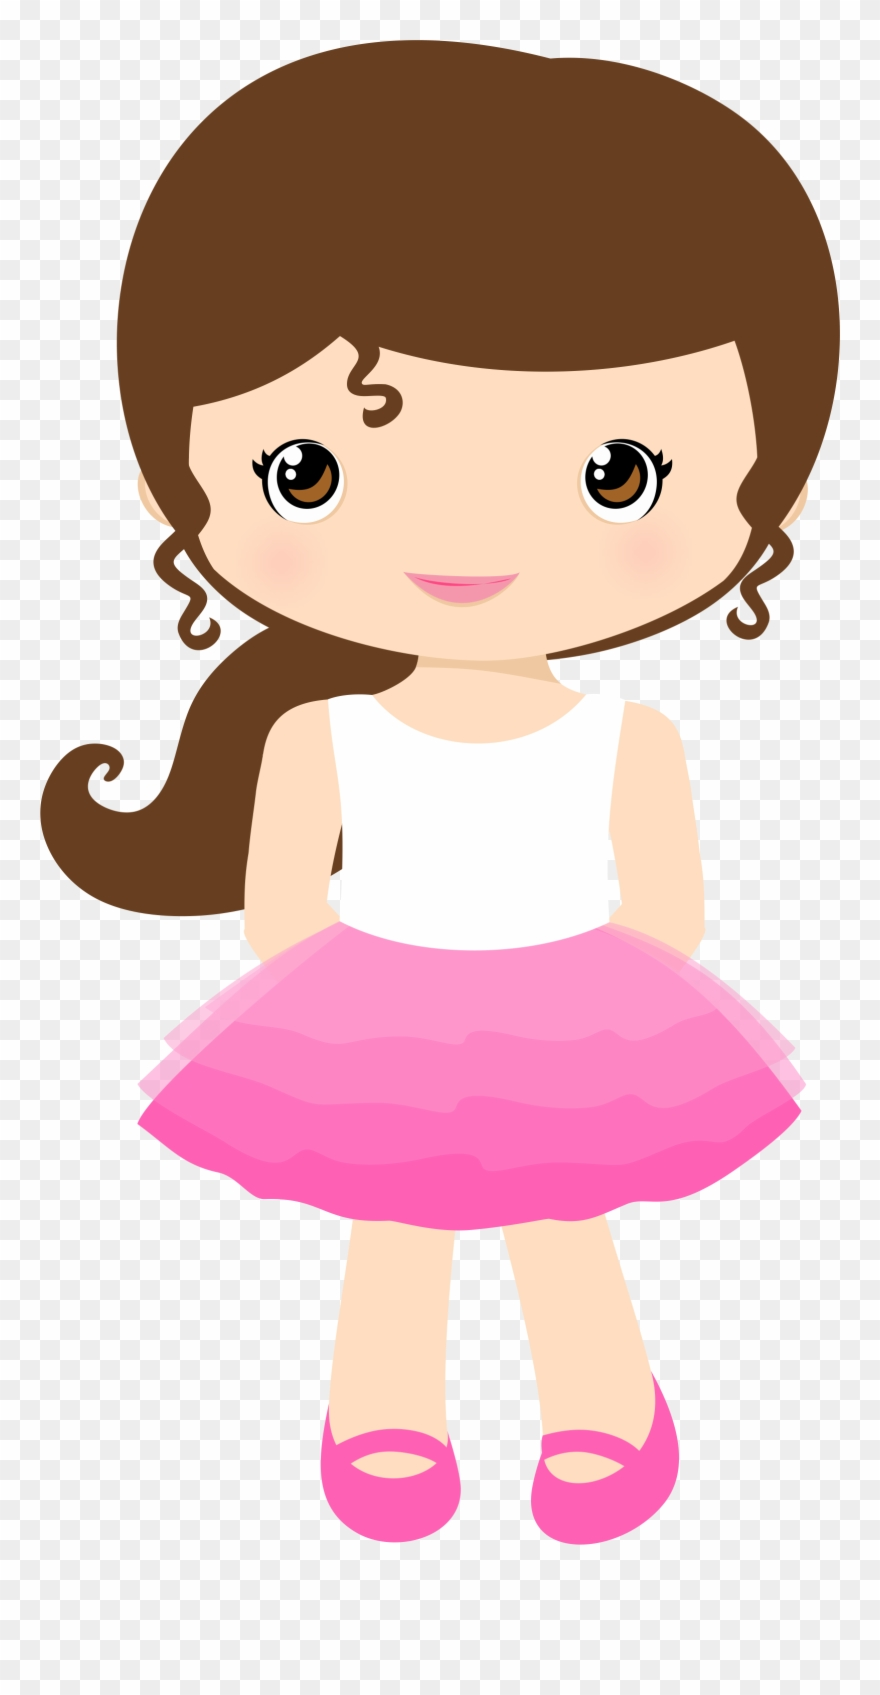 Girl cartoon cute little. Girls clipart animated